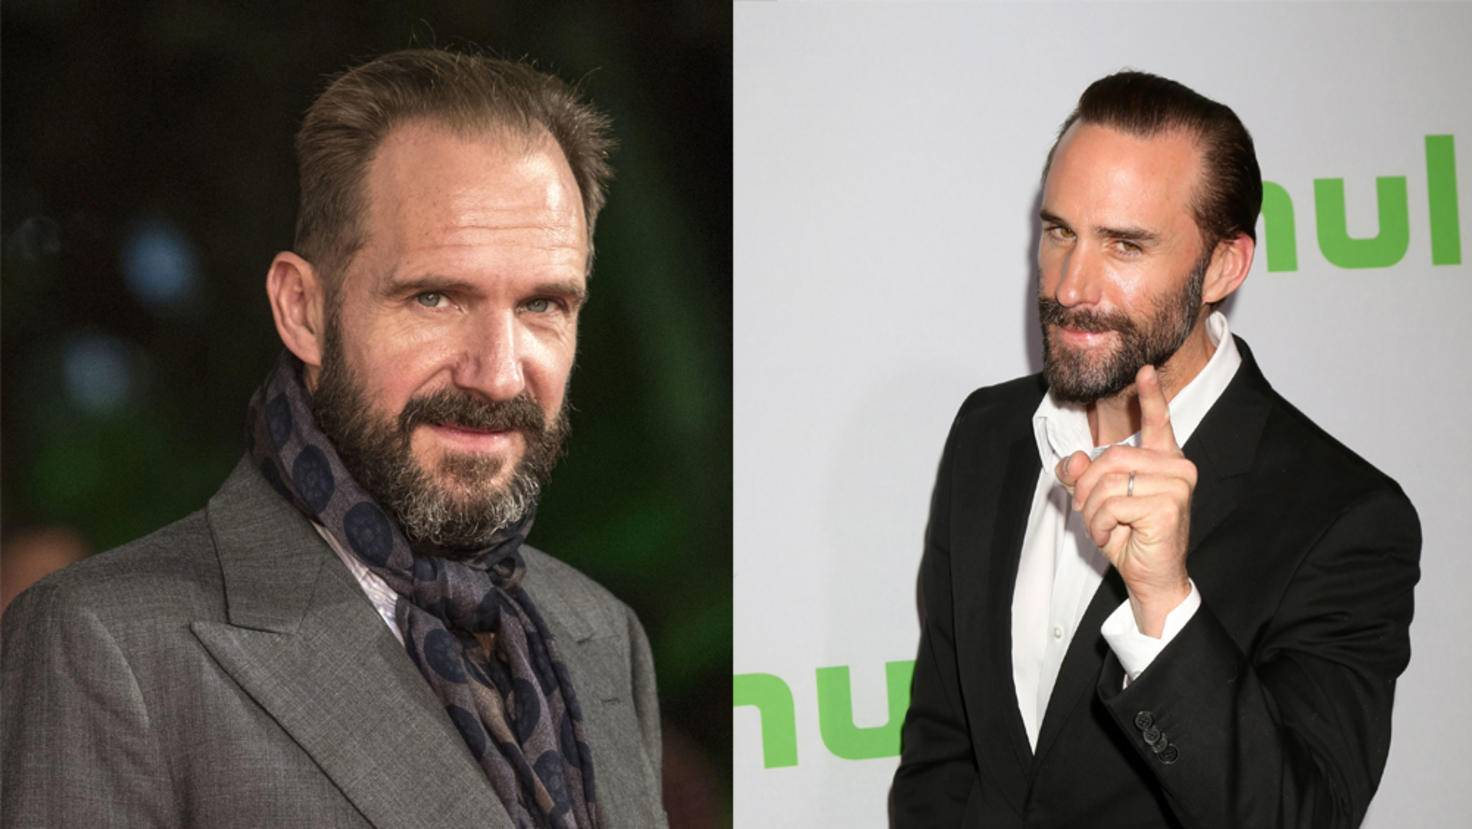 Ralph Fiennes_picture allianceGeisler-Fotopress_Joseph Fiennes_picture alliance newscom